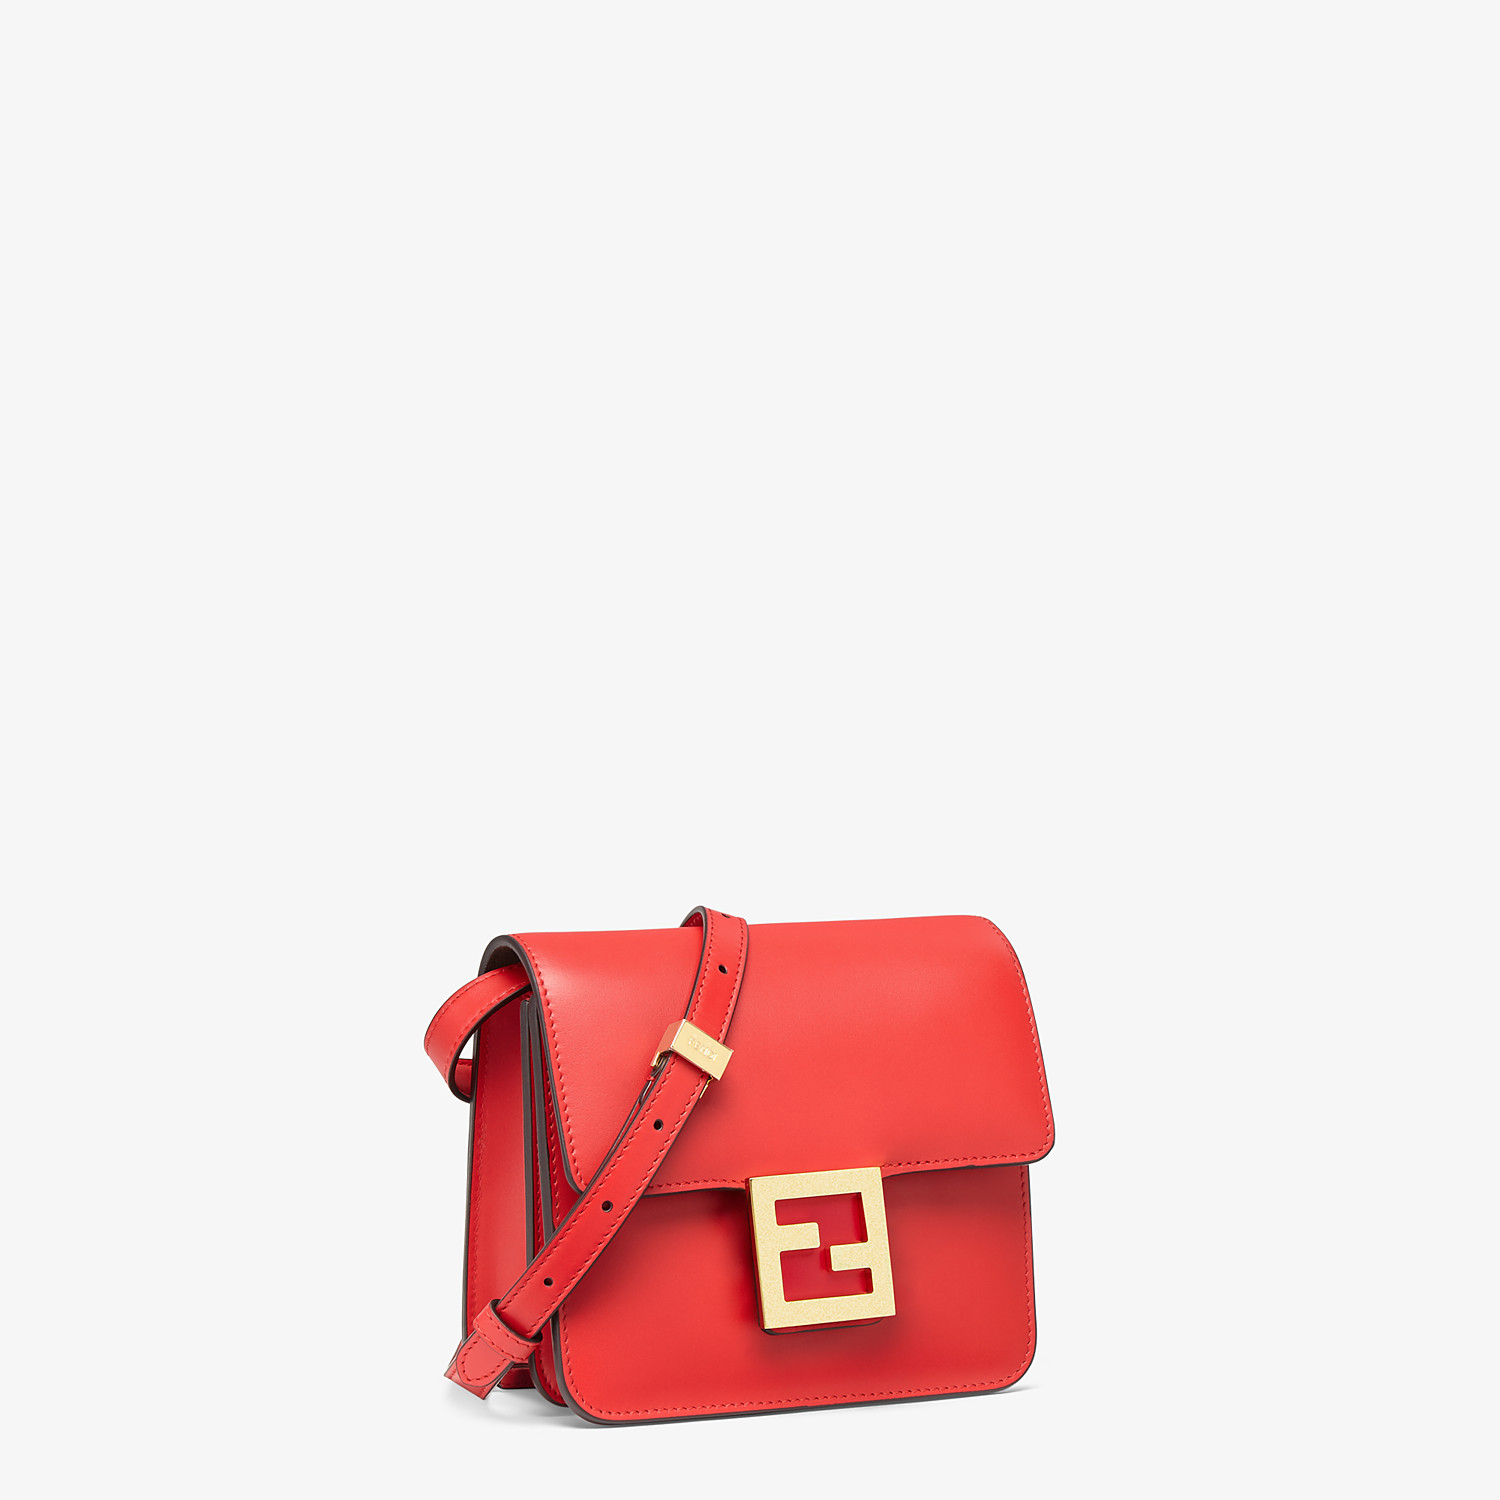 FENDI FENDI FAB - Red leather bag - view 2 detail